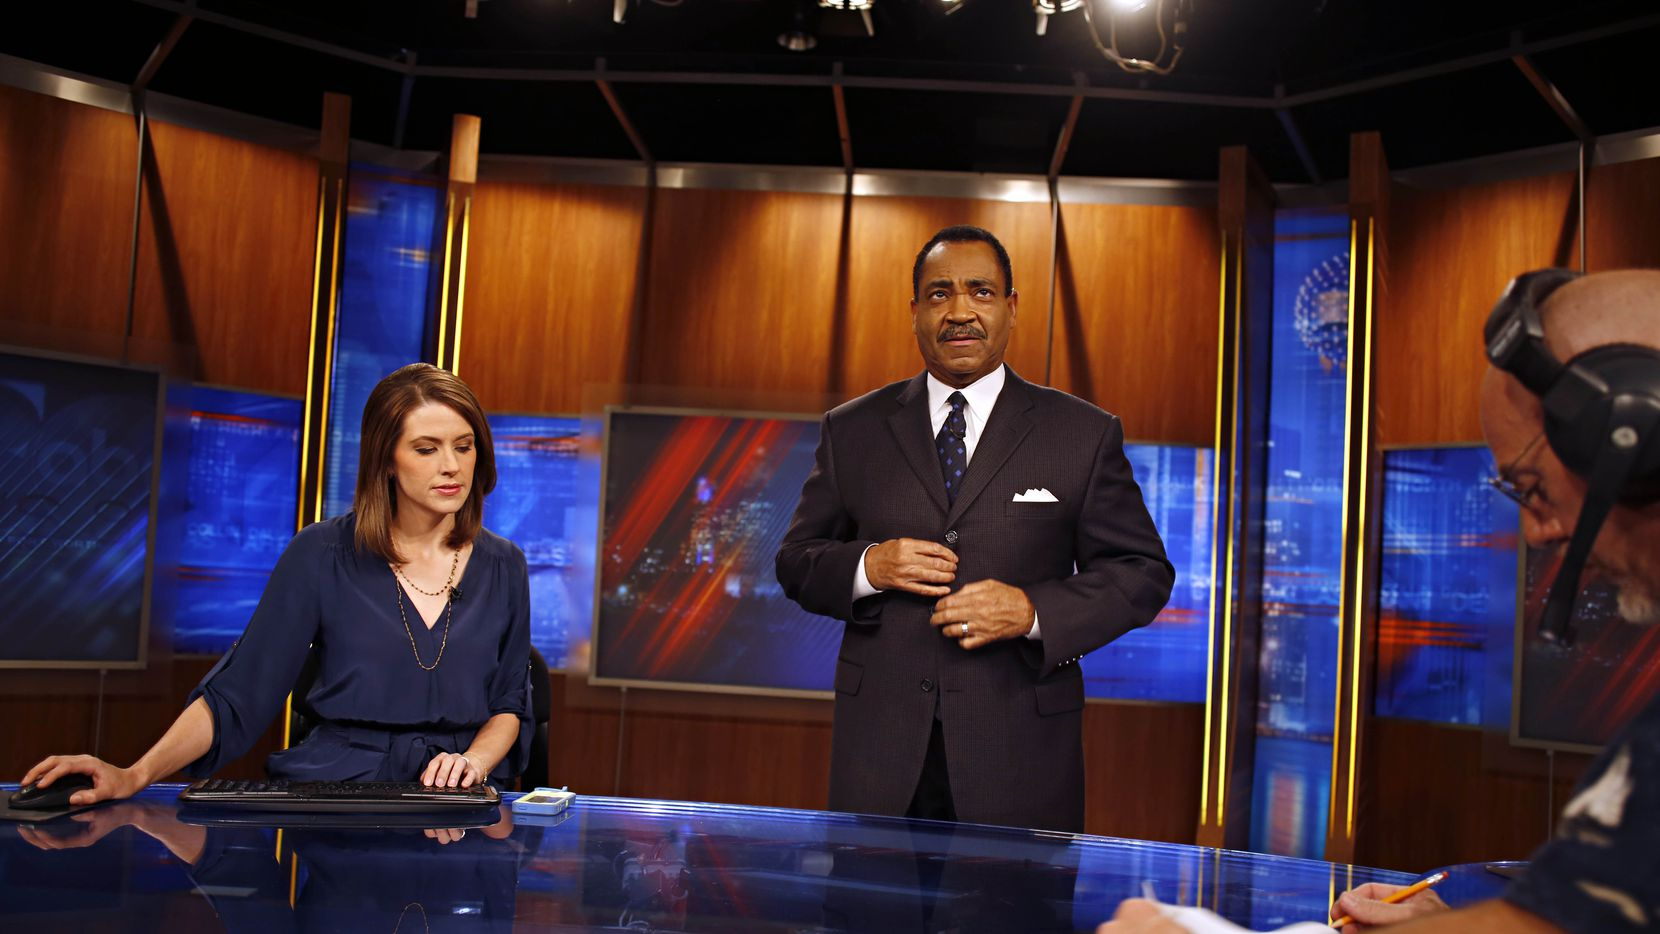 Anchors Shelly Slater and John McCaa prepares for the 5 p.m. newscast in  June 2013.